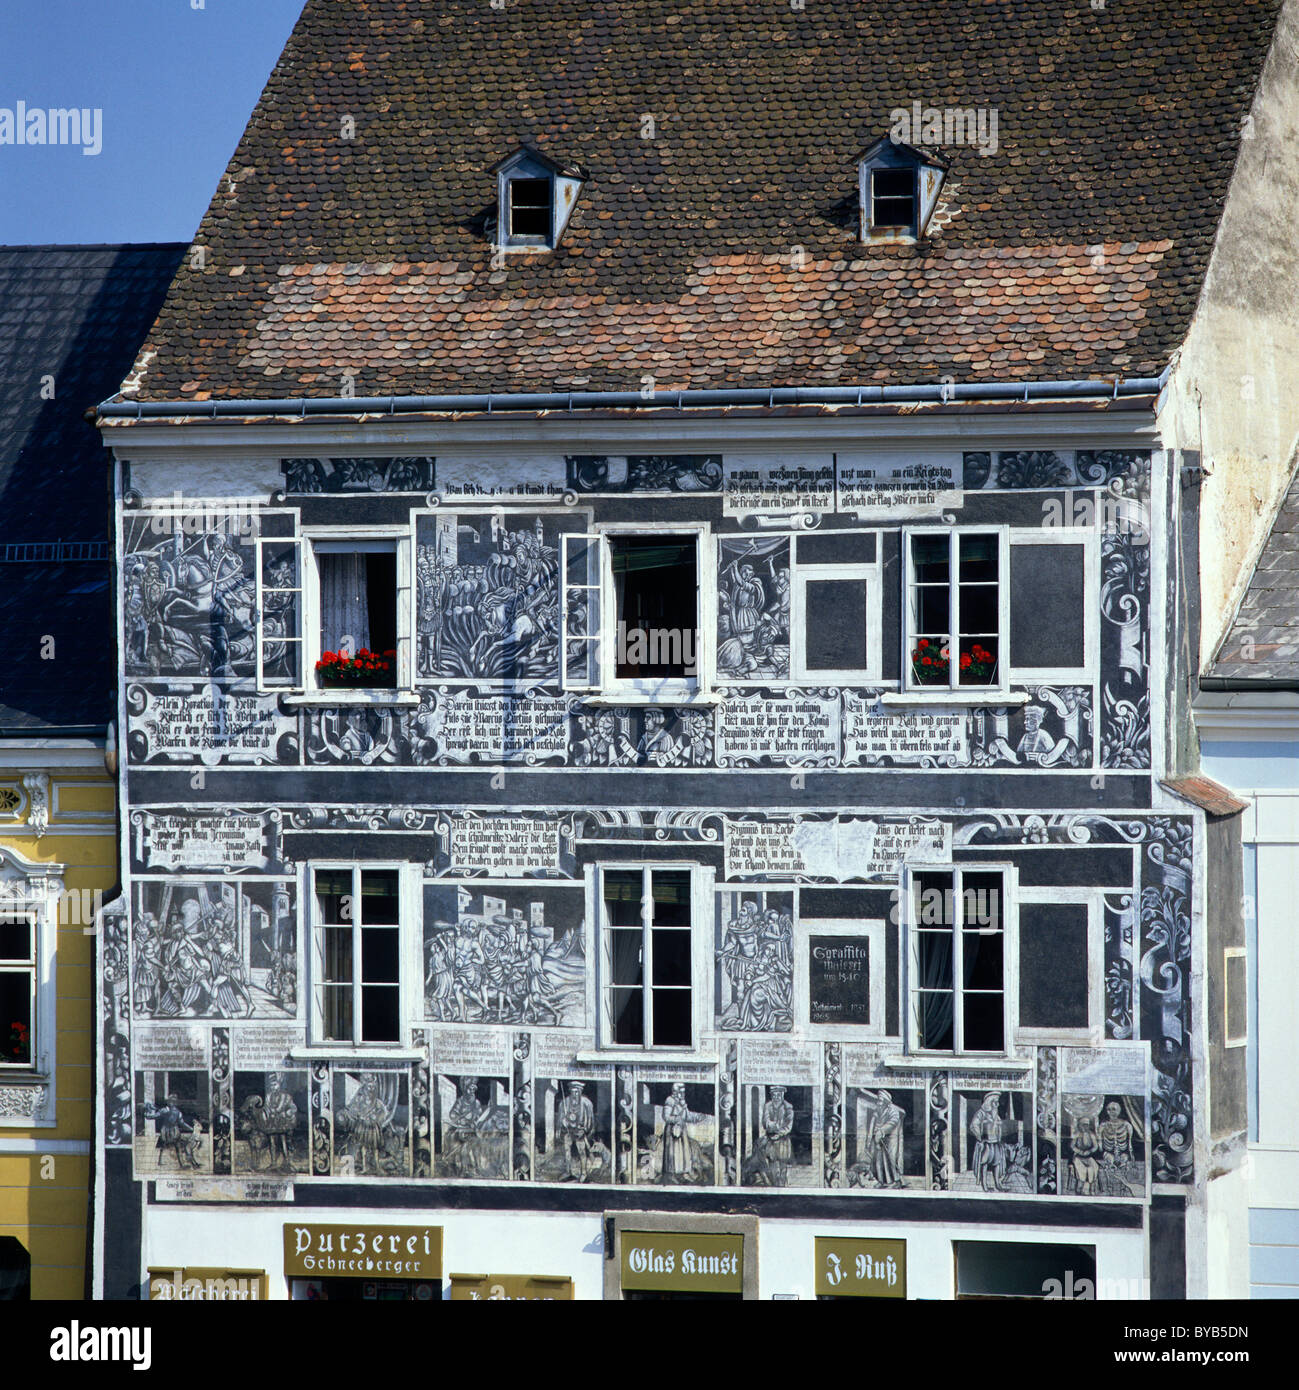 Roman virtues and the ages of a man on a facade, Rathausplatz 4, Weitra, Waldviertel, Lower Austria, Europe - Stock Image